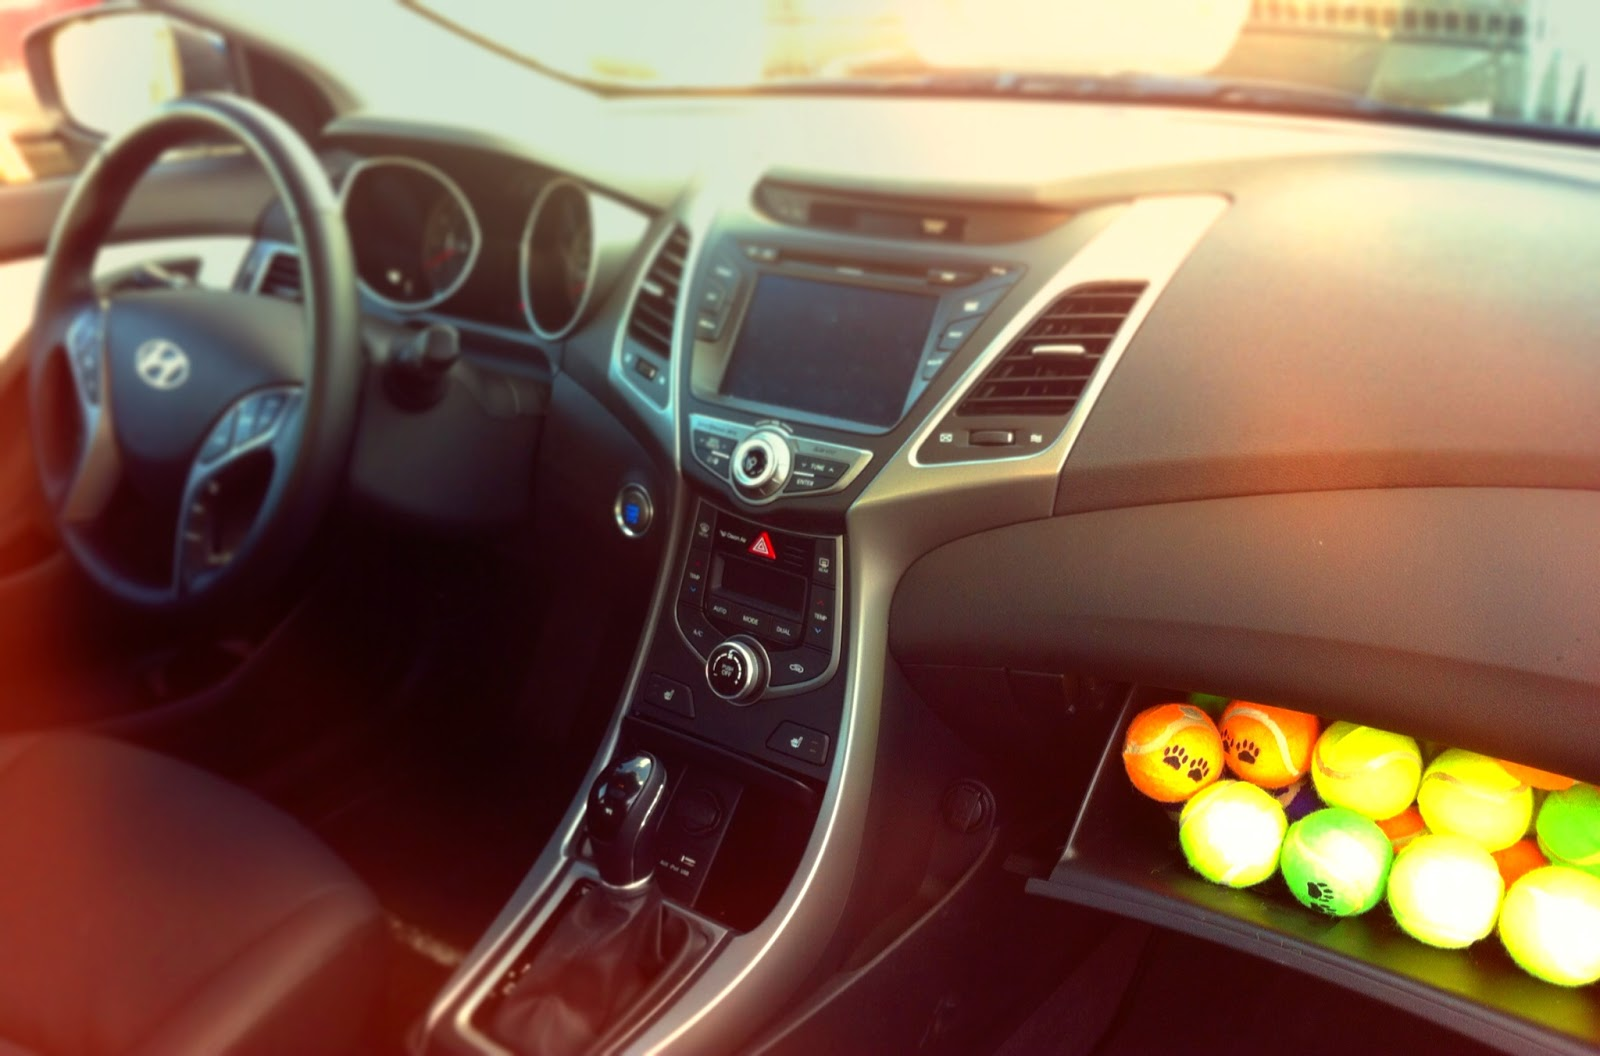 2014 Hyundai Elantra Limited Tech interior